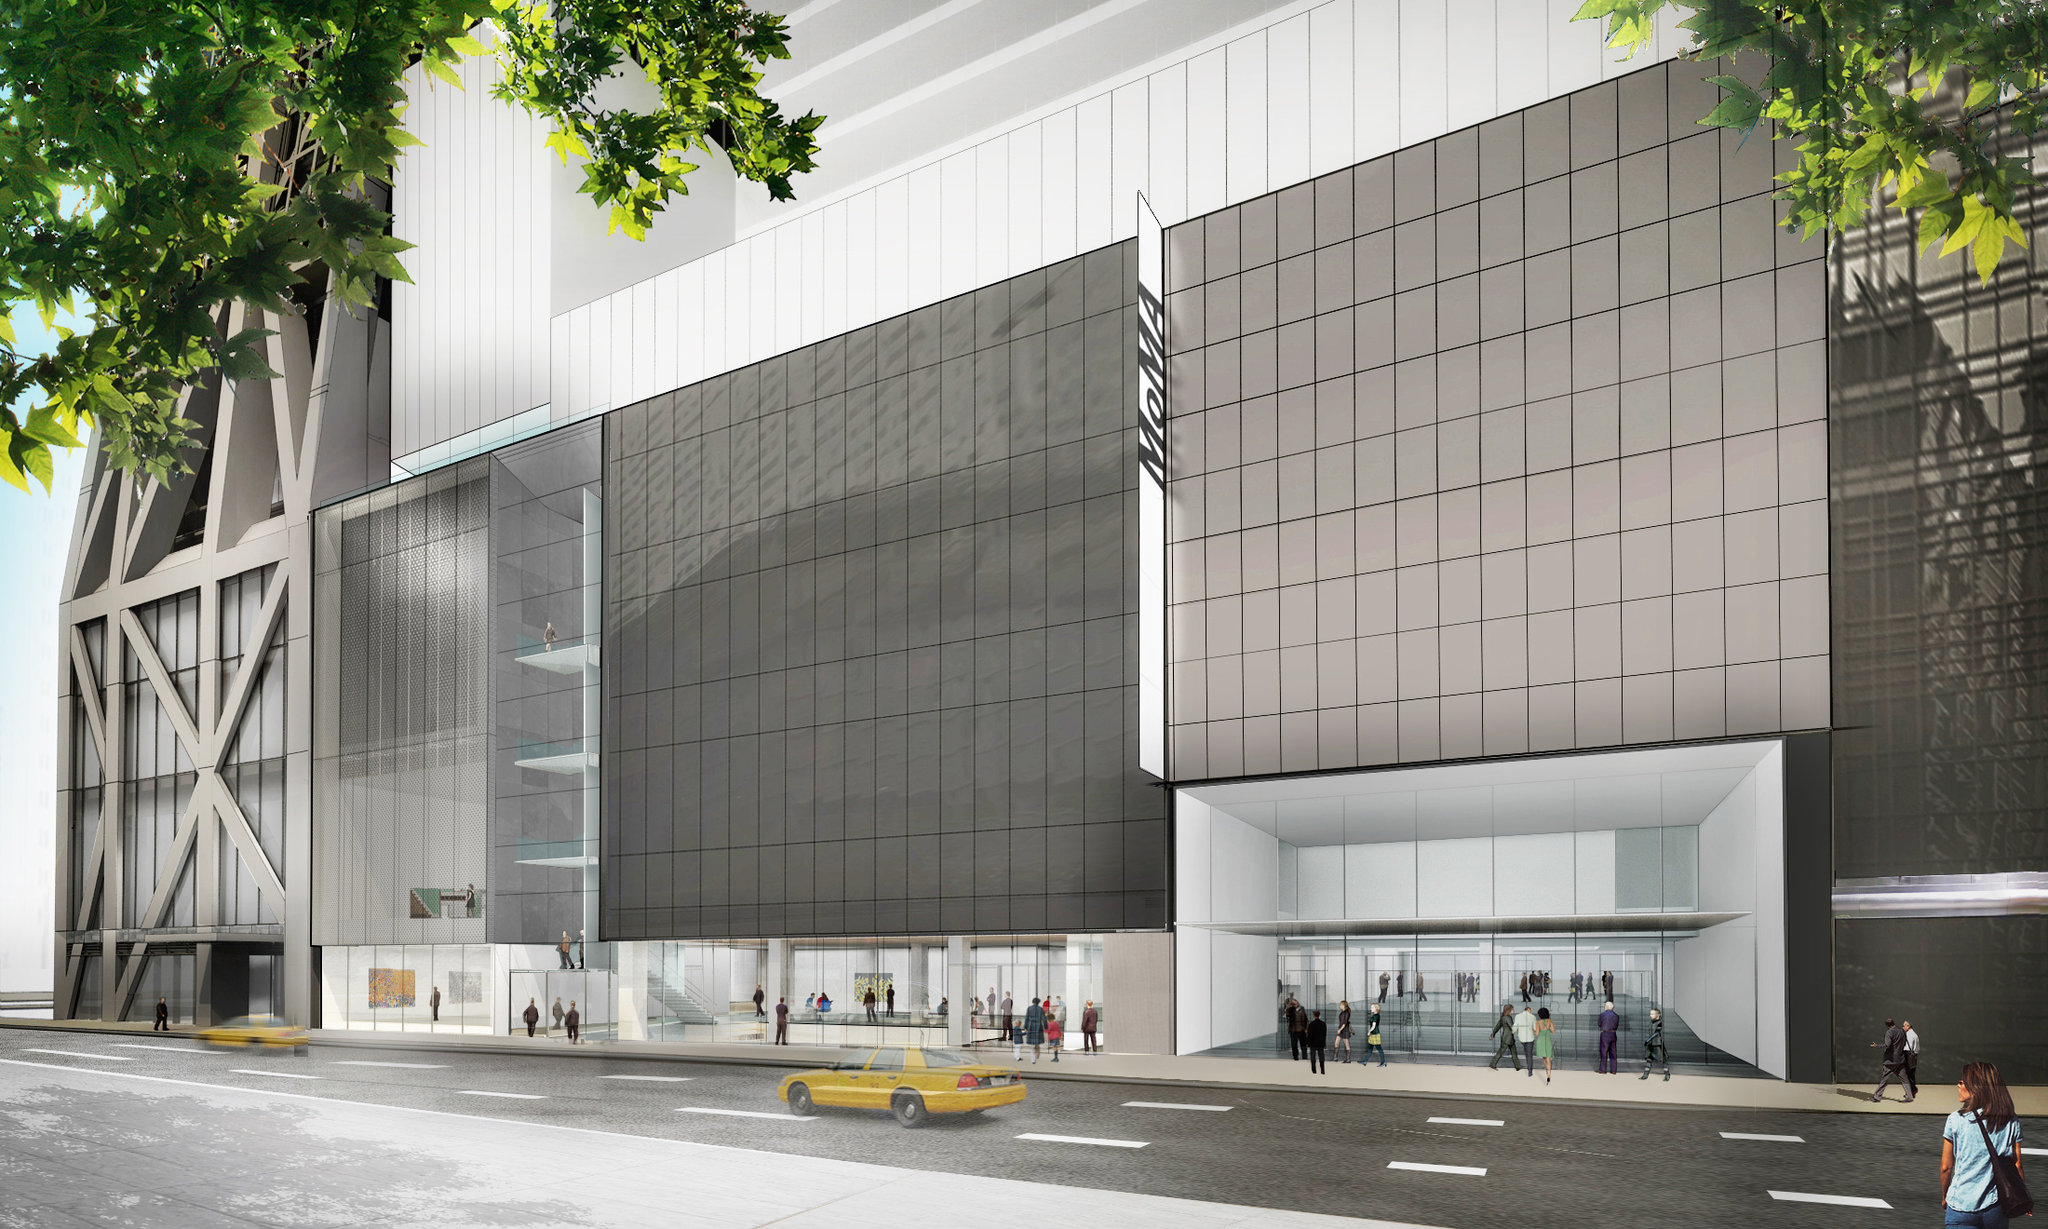 Exterior of the Museum of Modern Art's planned face on West 53rd Street, showing glass-walled galleries. Access to the ground floor will be free to the public. The galleries incorporate space from the demolished American Folk Art Museum and Jean Nouvel condominium tower. Credit Diller Scofidio + Renfro